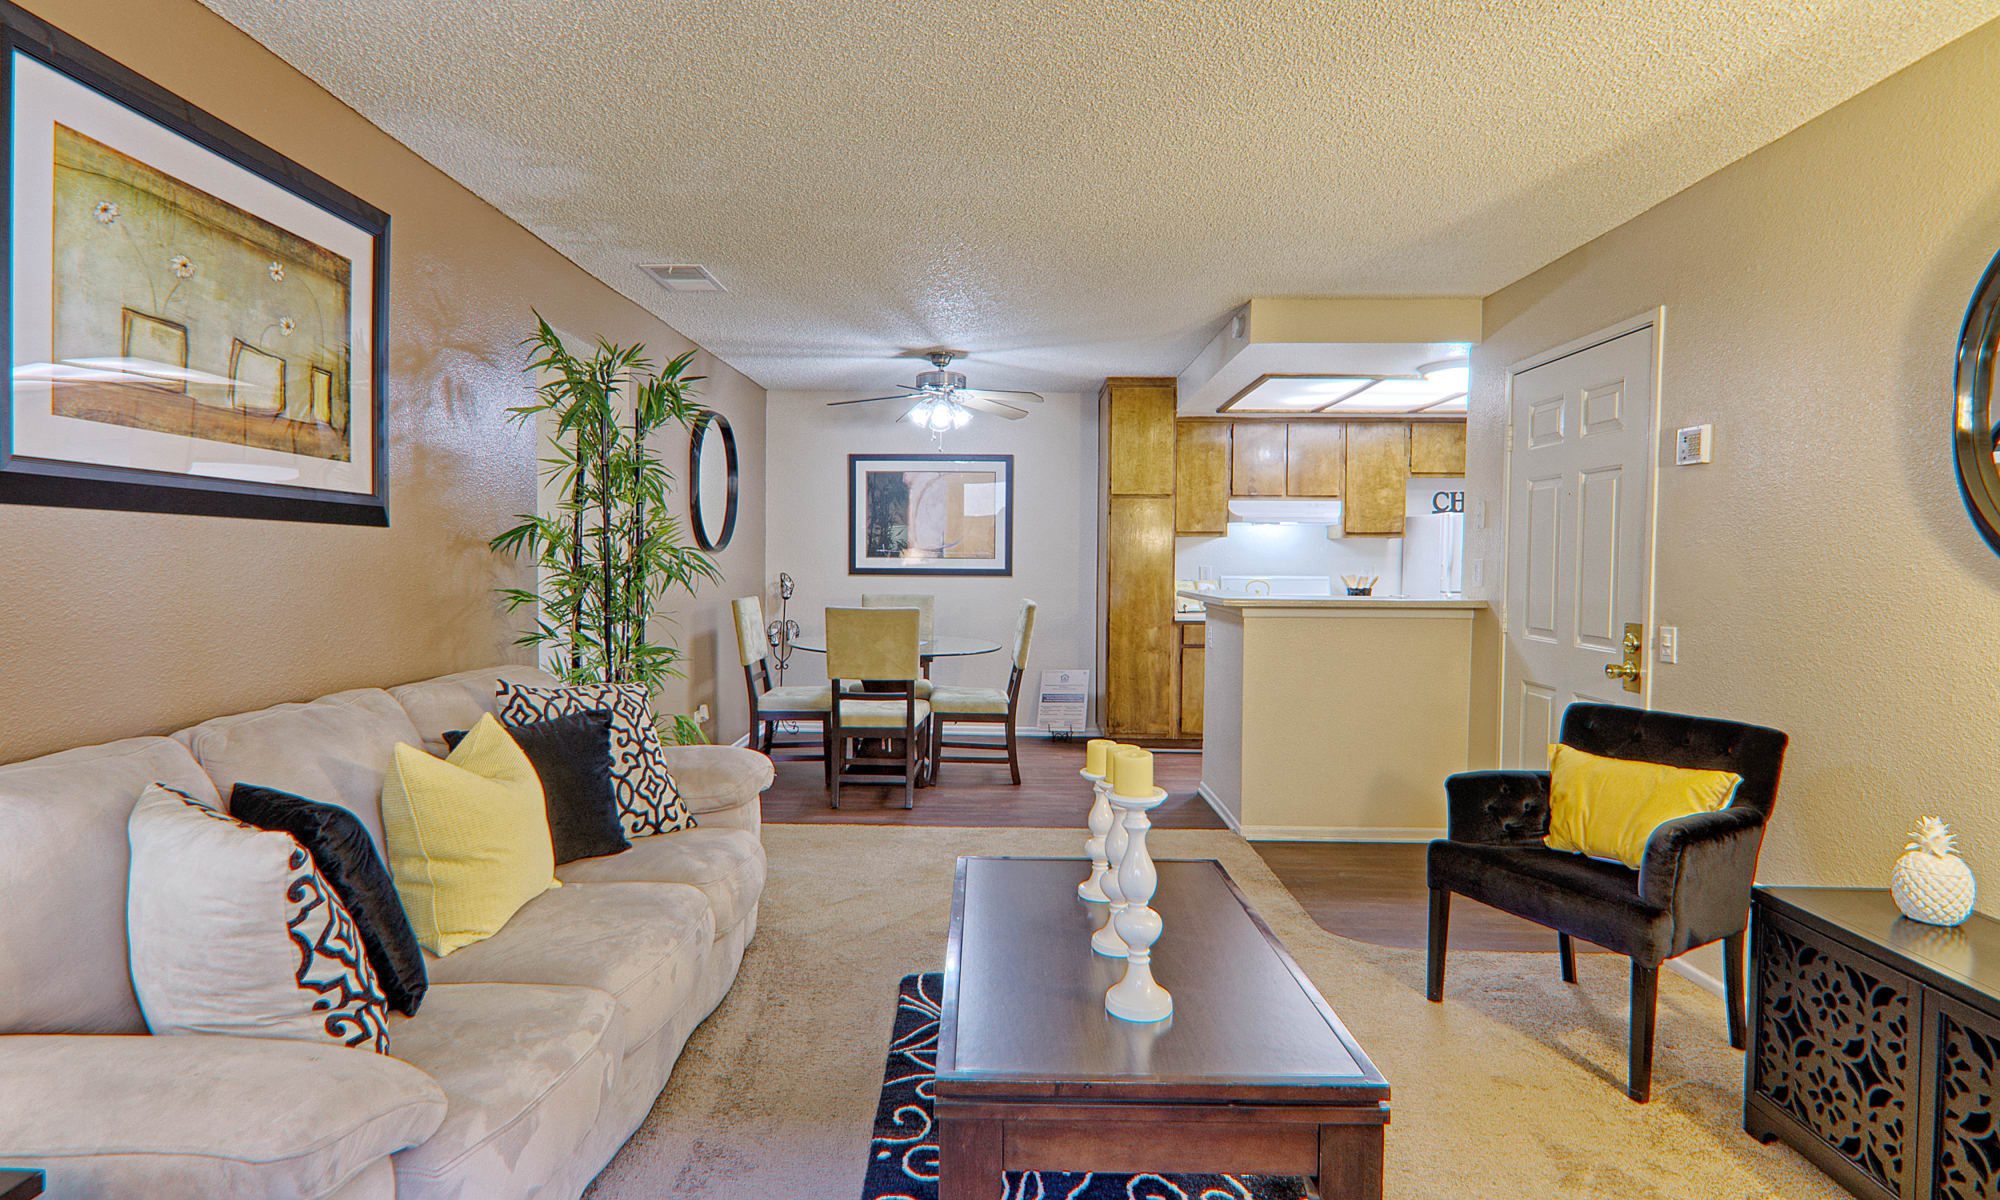 Learn more about our apartment community at Cordova Park Apartment Homes in Lancaster